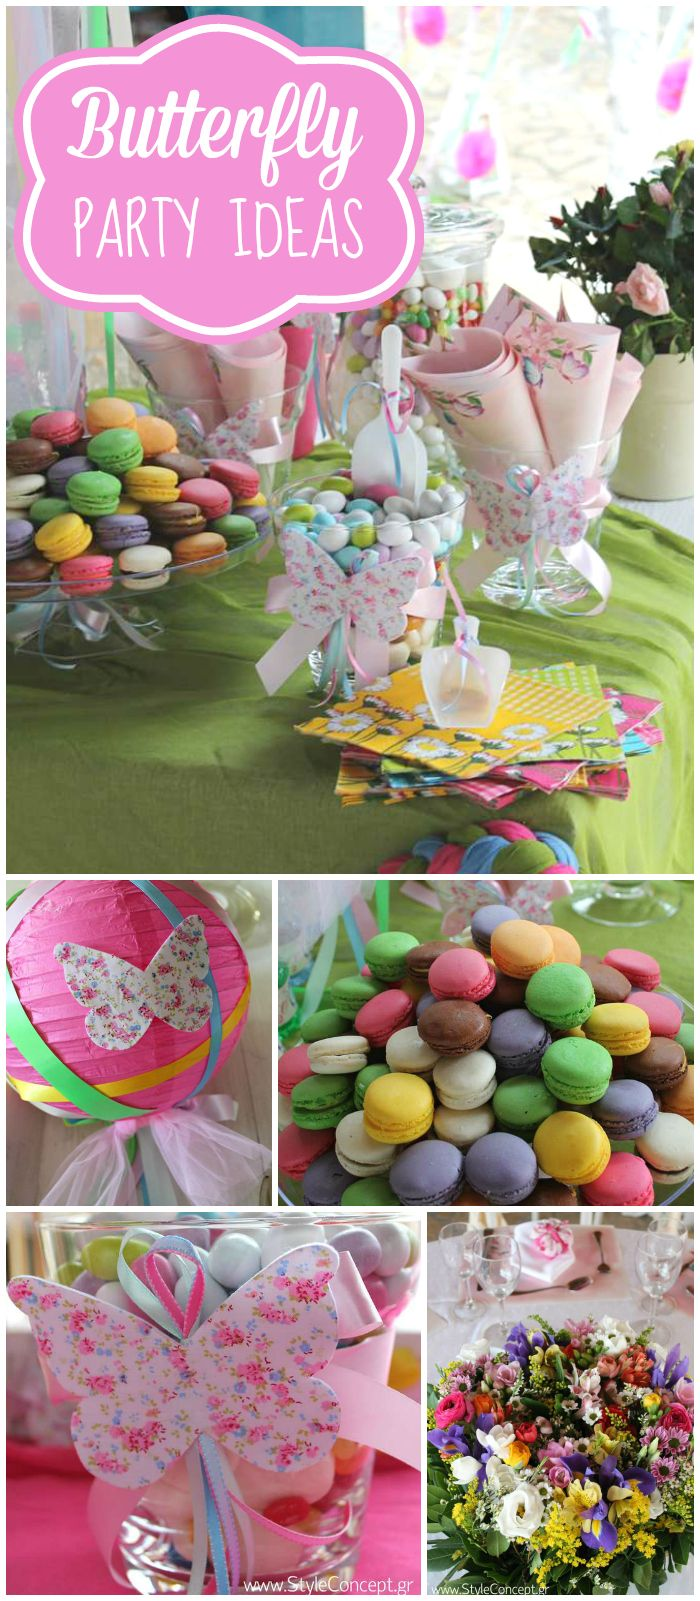 A butterfly birthday party for twin girls with colorful macarons and floral bouquets! See more party planning ideas at CatchMyParty.com!